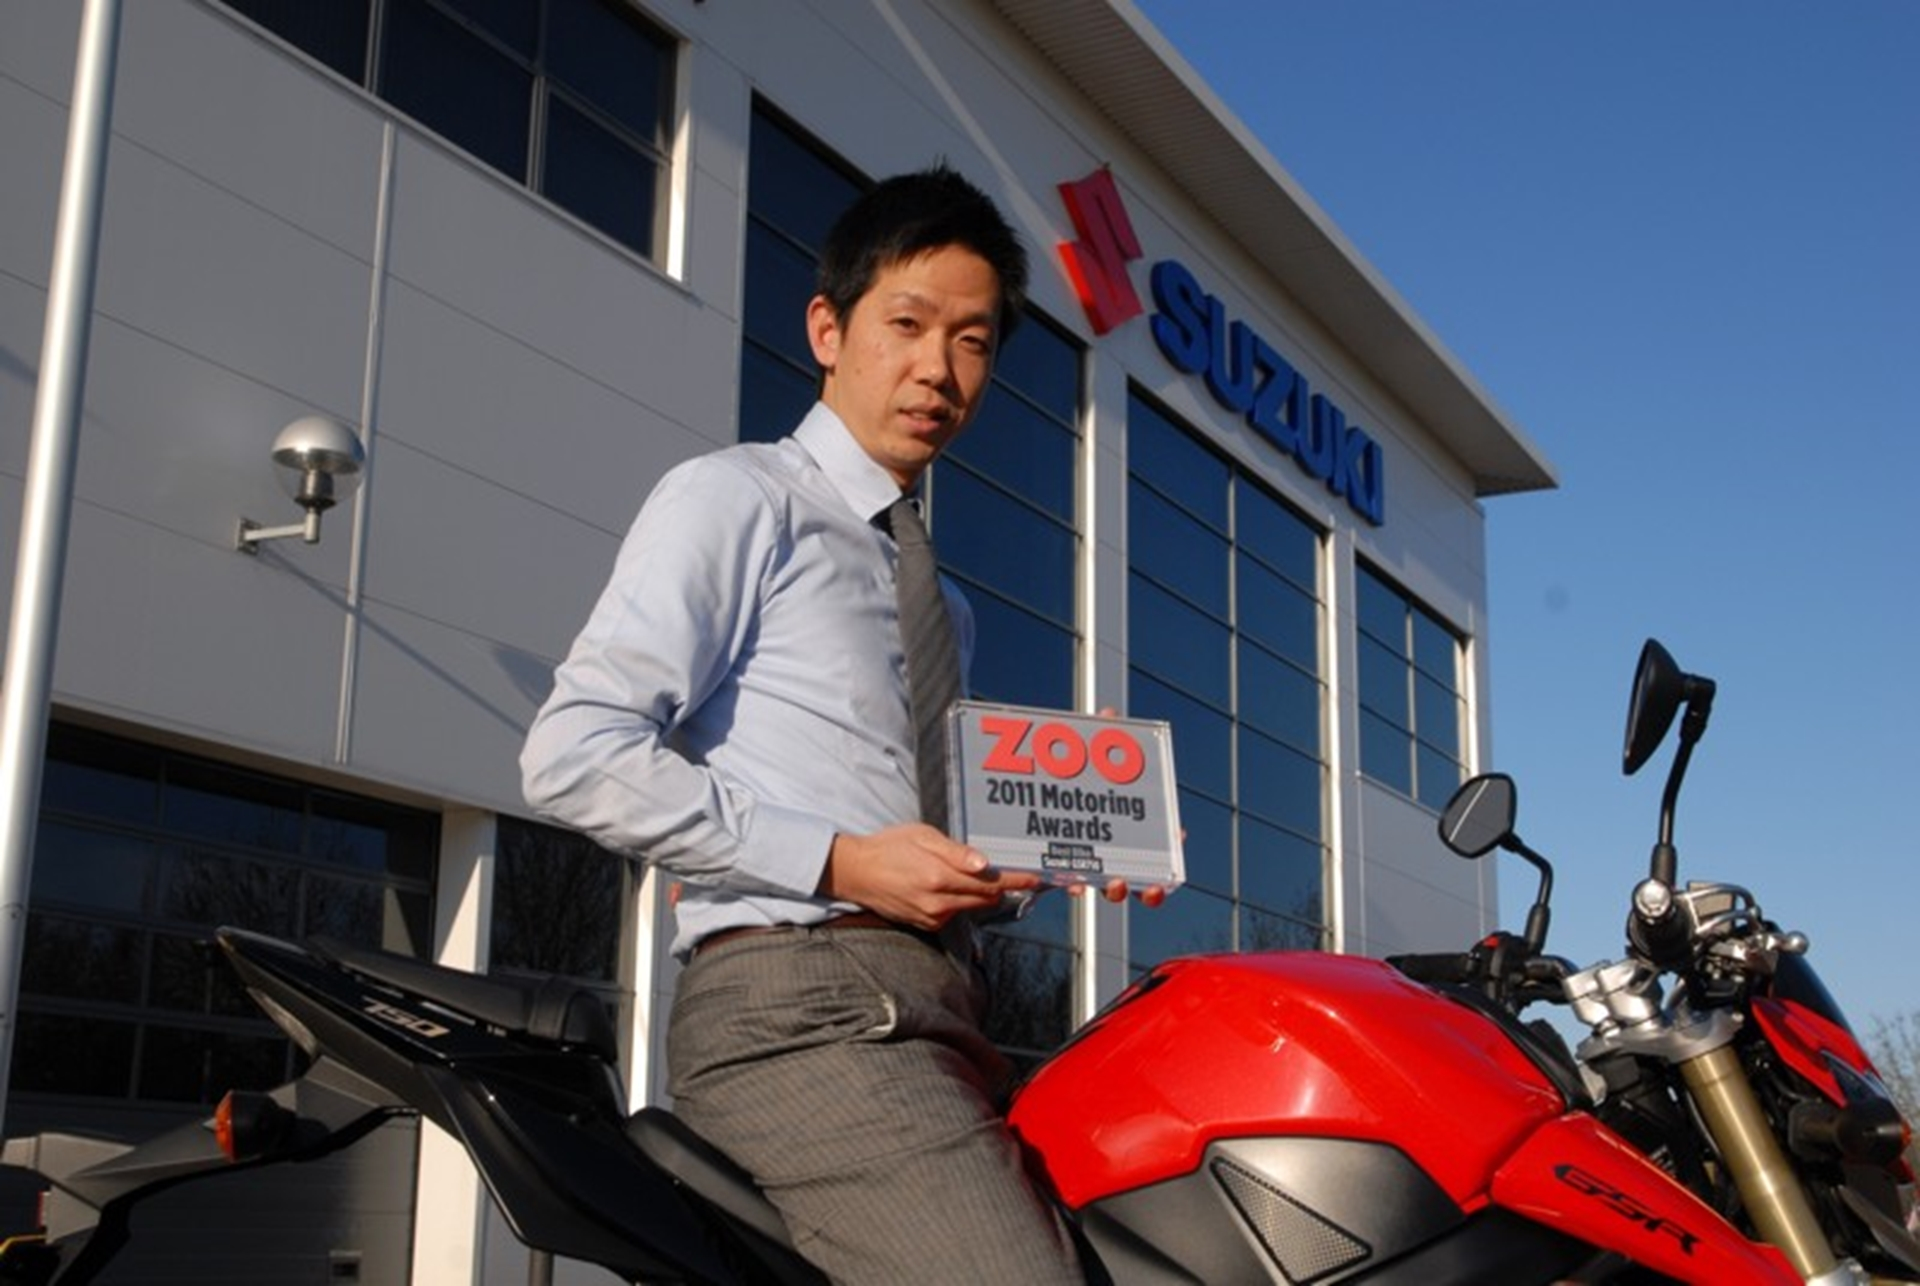 Suzuki's Tom Taniguchi is pictured on the GSR750